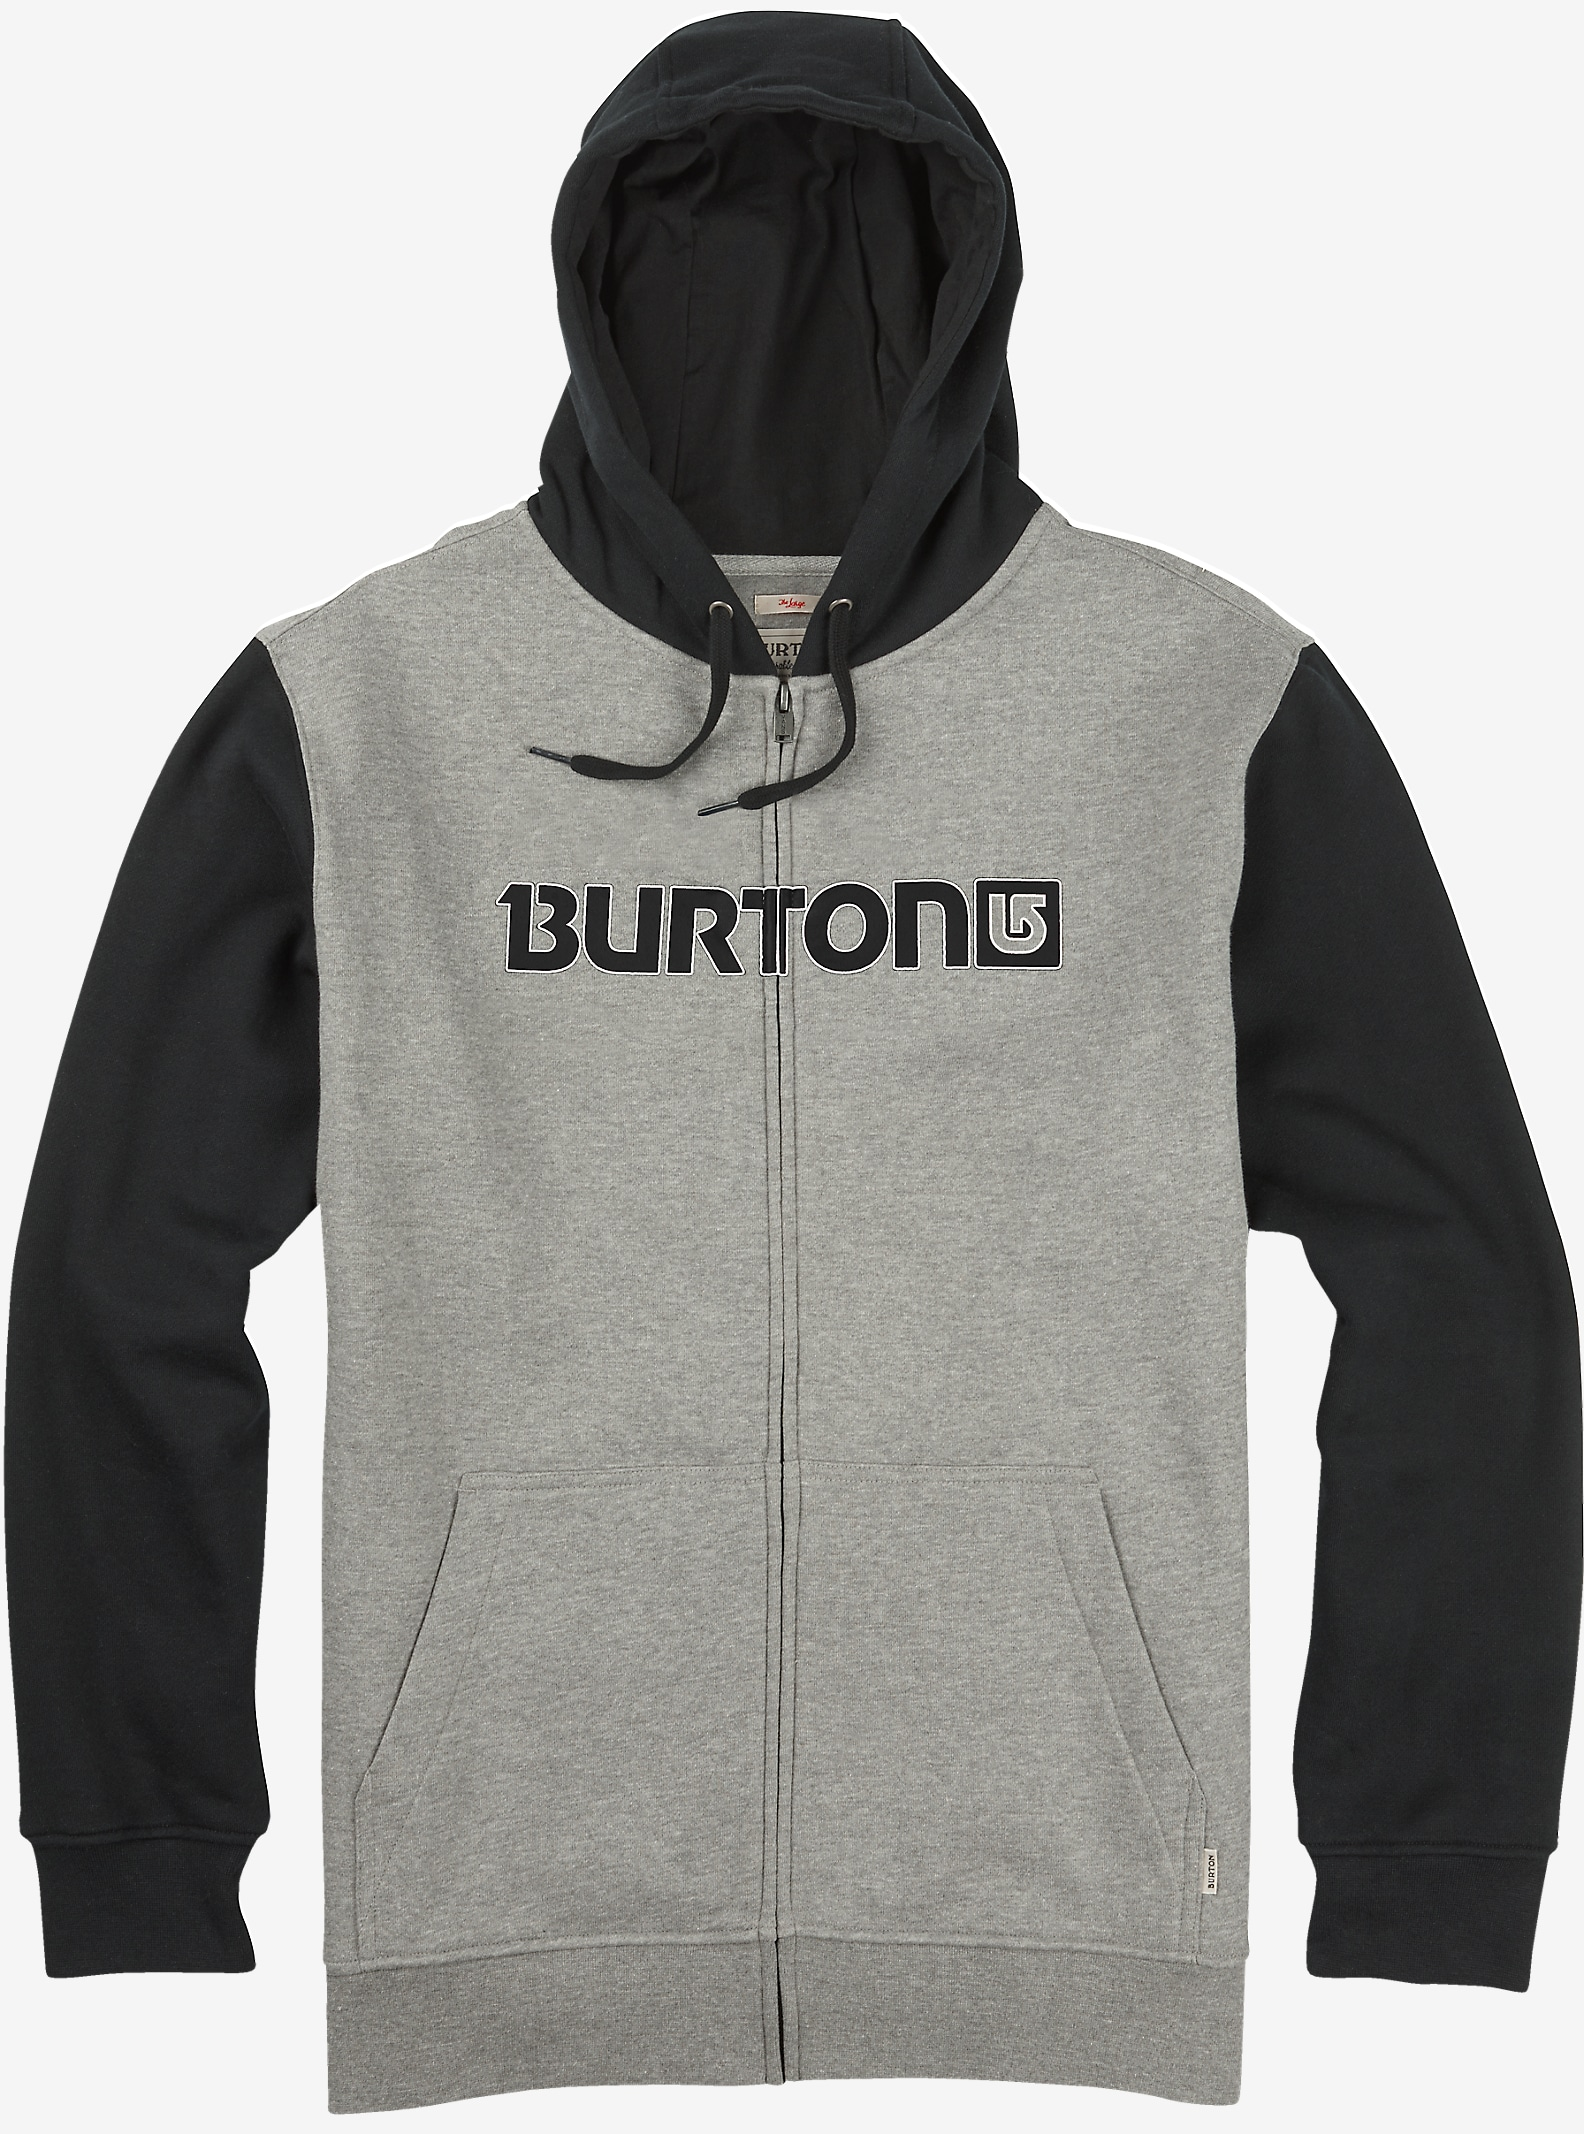 Burton Logo Horizontal Full-Zip Hoodie shown in Gray Heather